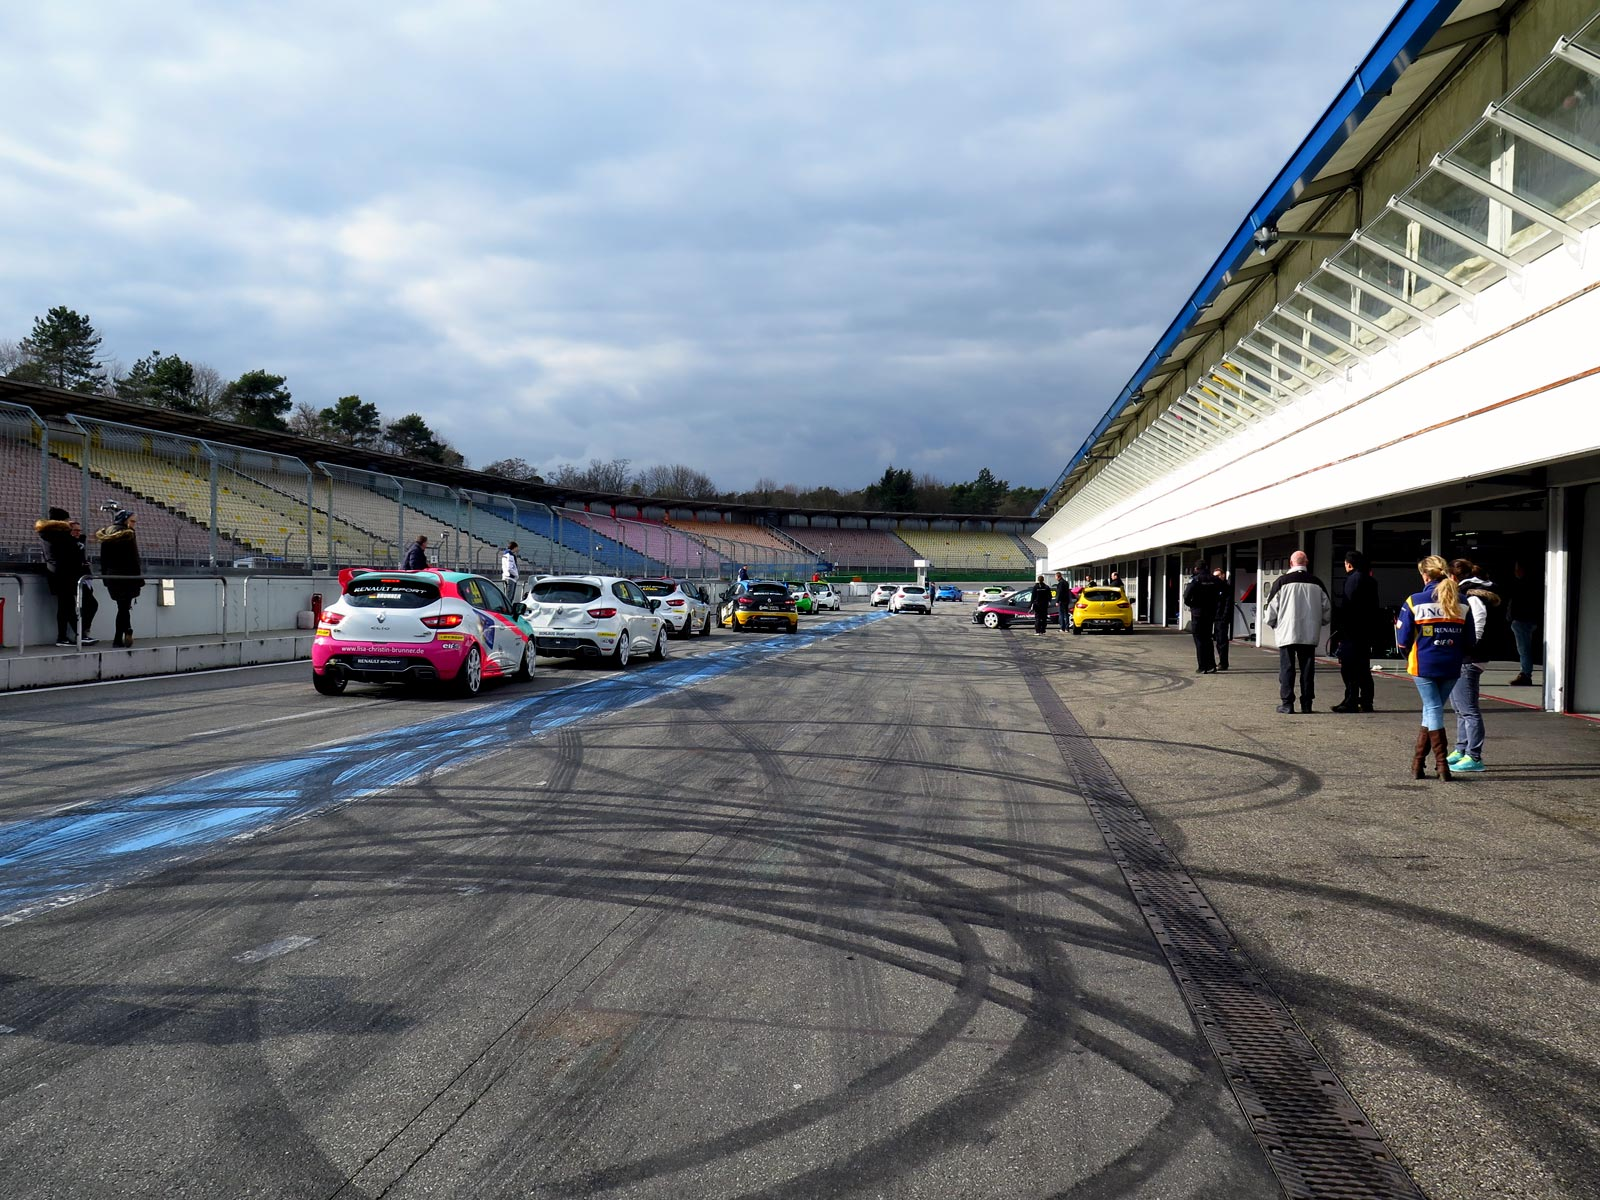 Clio Cup Central Europe i pit lane på Hockenhiemring